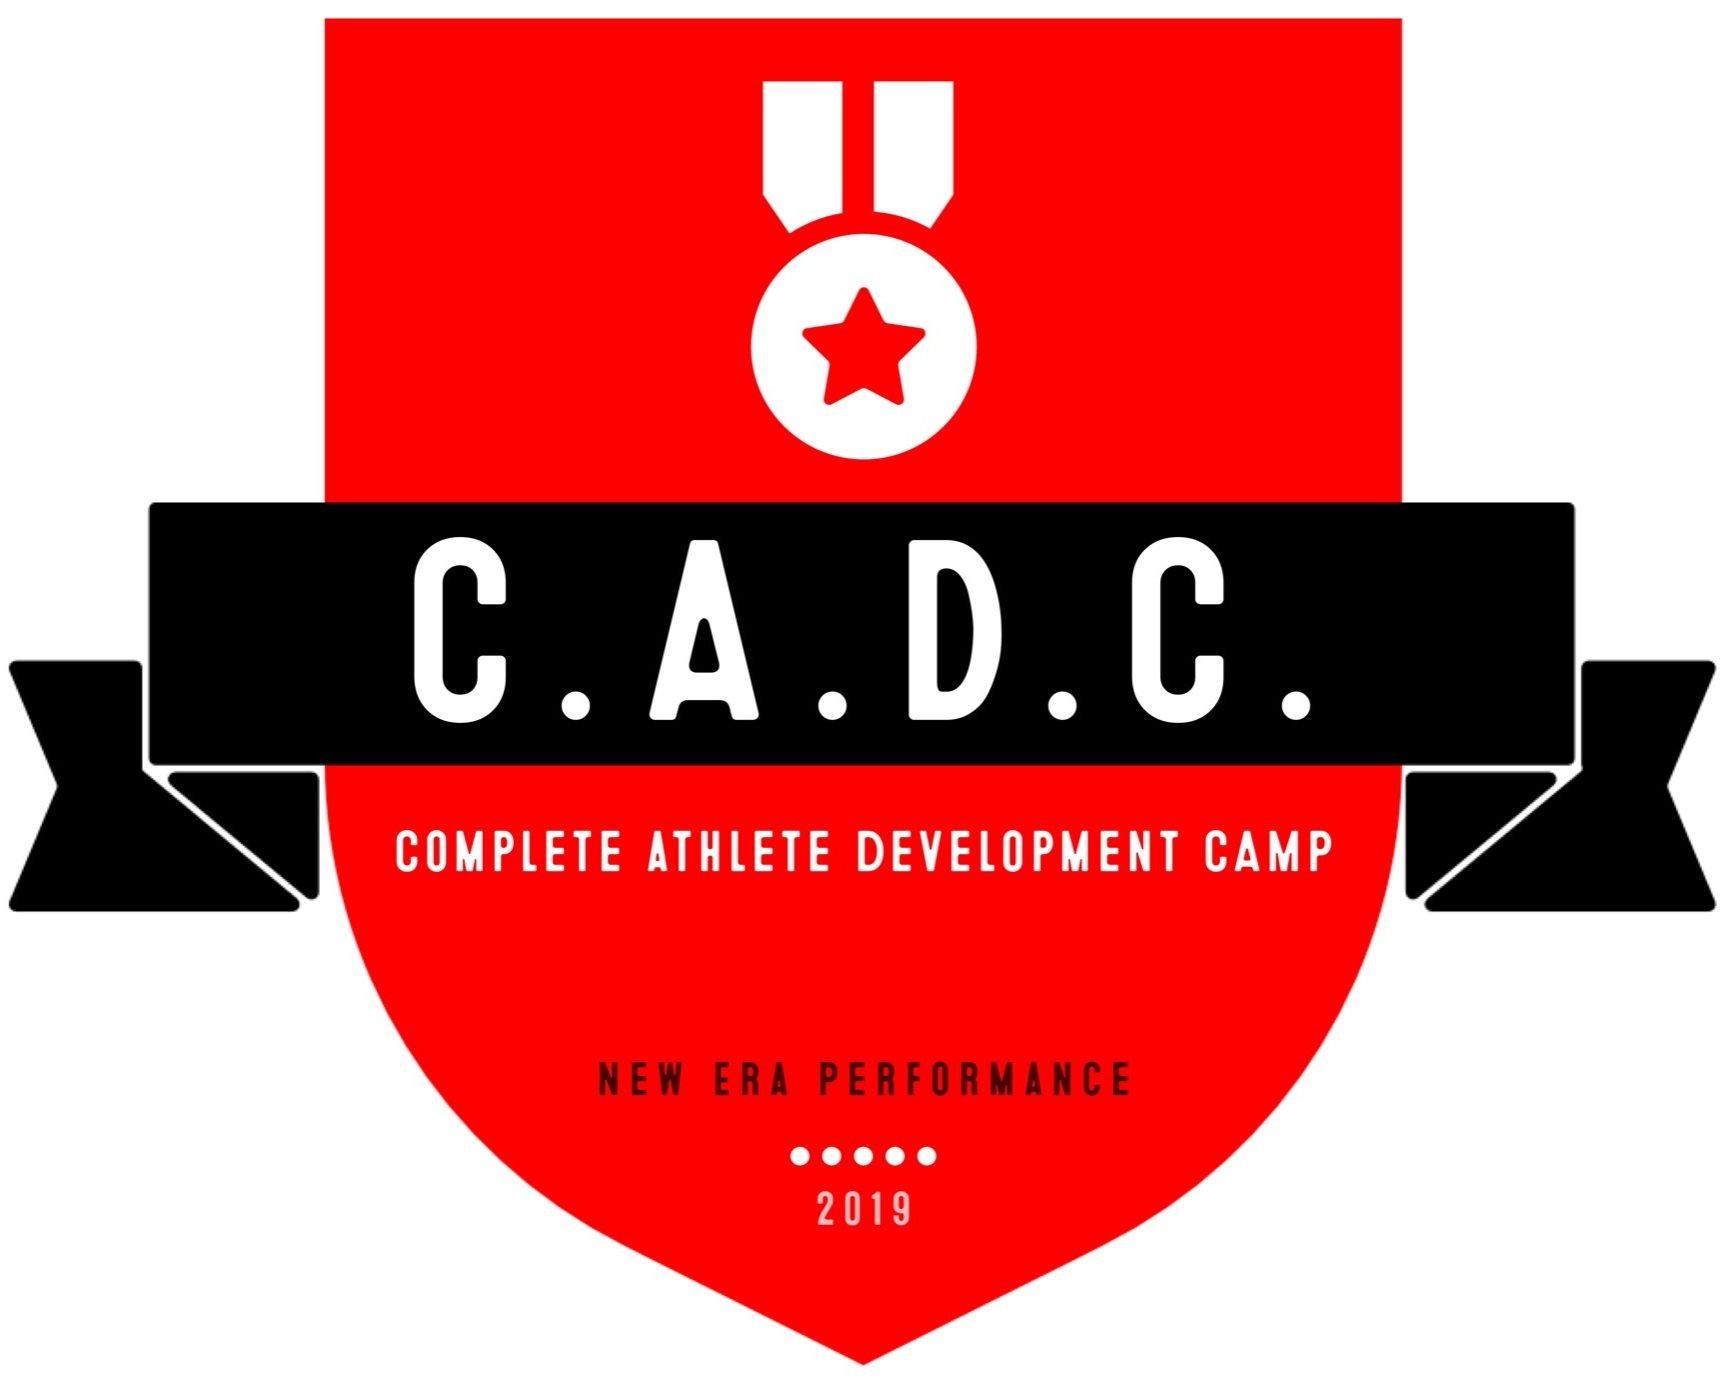 COMPLETE ATHLETE DEVELOPMENT CAMP (C.A.D.C.) - 6/10/2019 - 8/9/2019 - Charlotte, NC